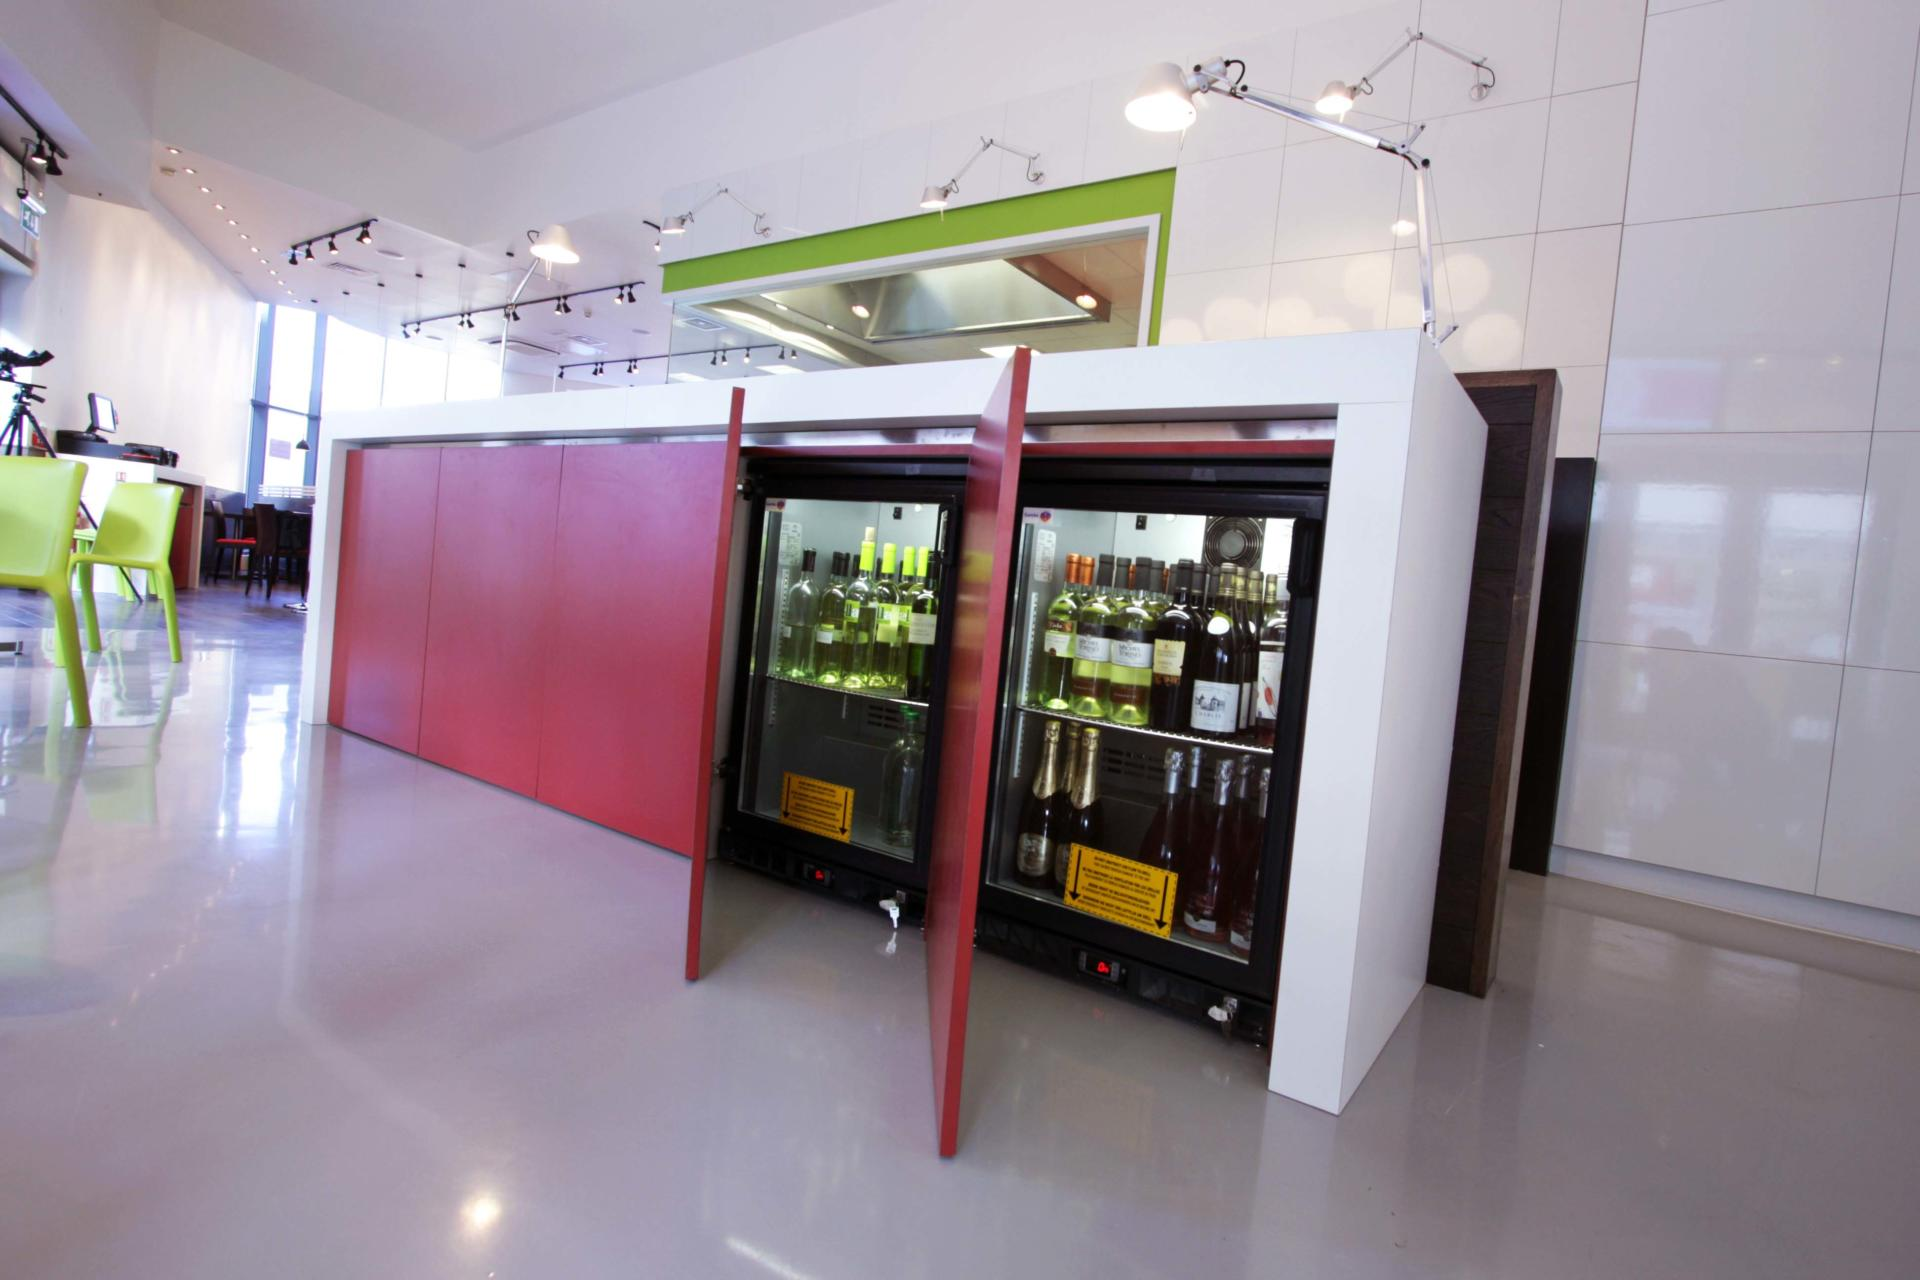 Oojam-Hemel-Hempstead-Indian-restaurant-and-kitchenFabrication-Stainless-Steel-Commercial-Kitchen-spacecatering_10